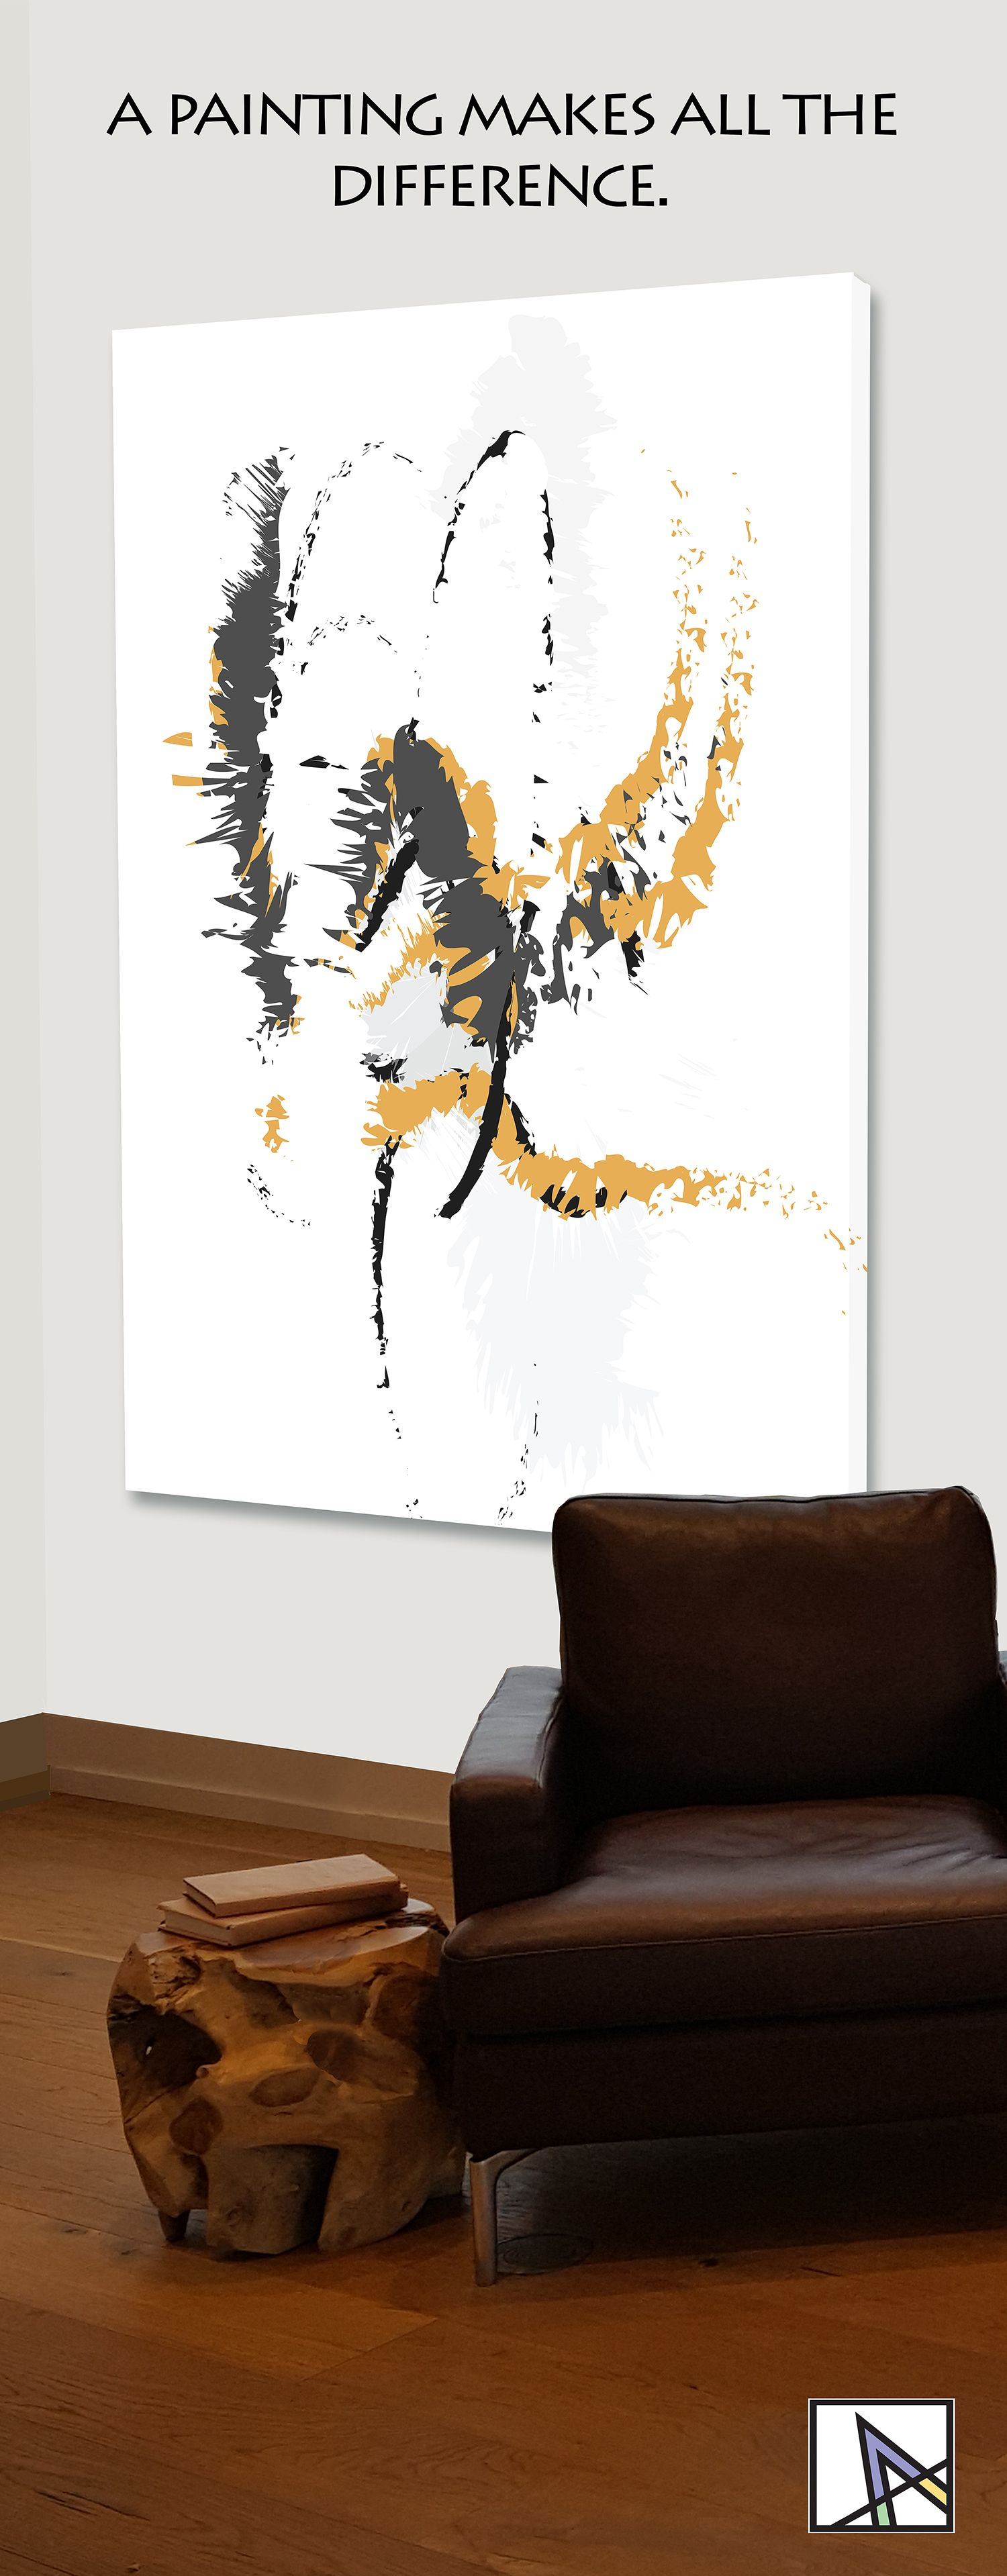 My fine art prints are museum quality limited edition giclee